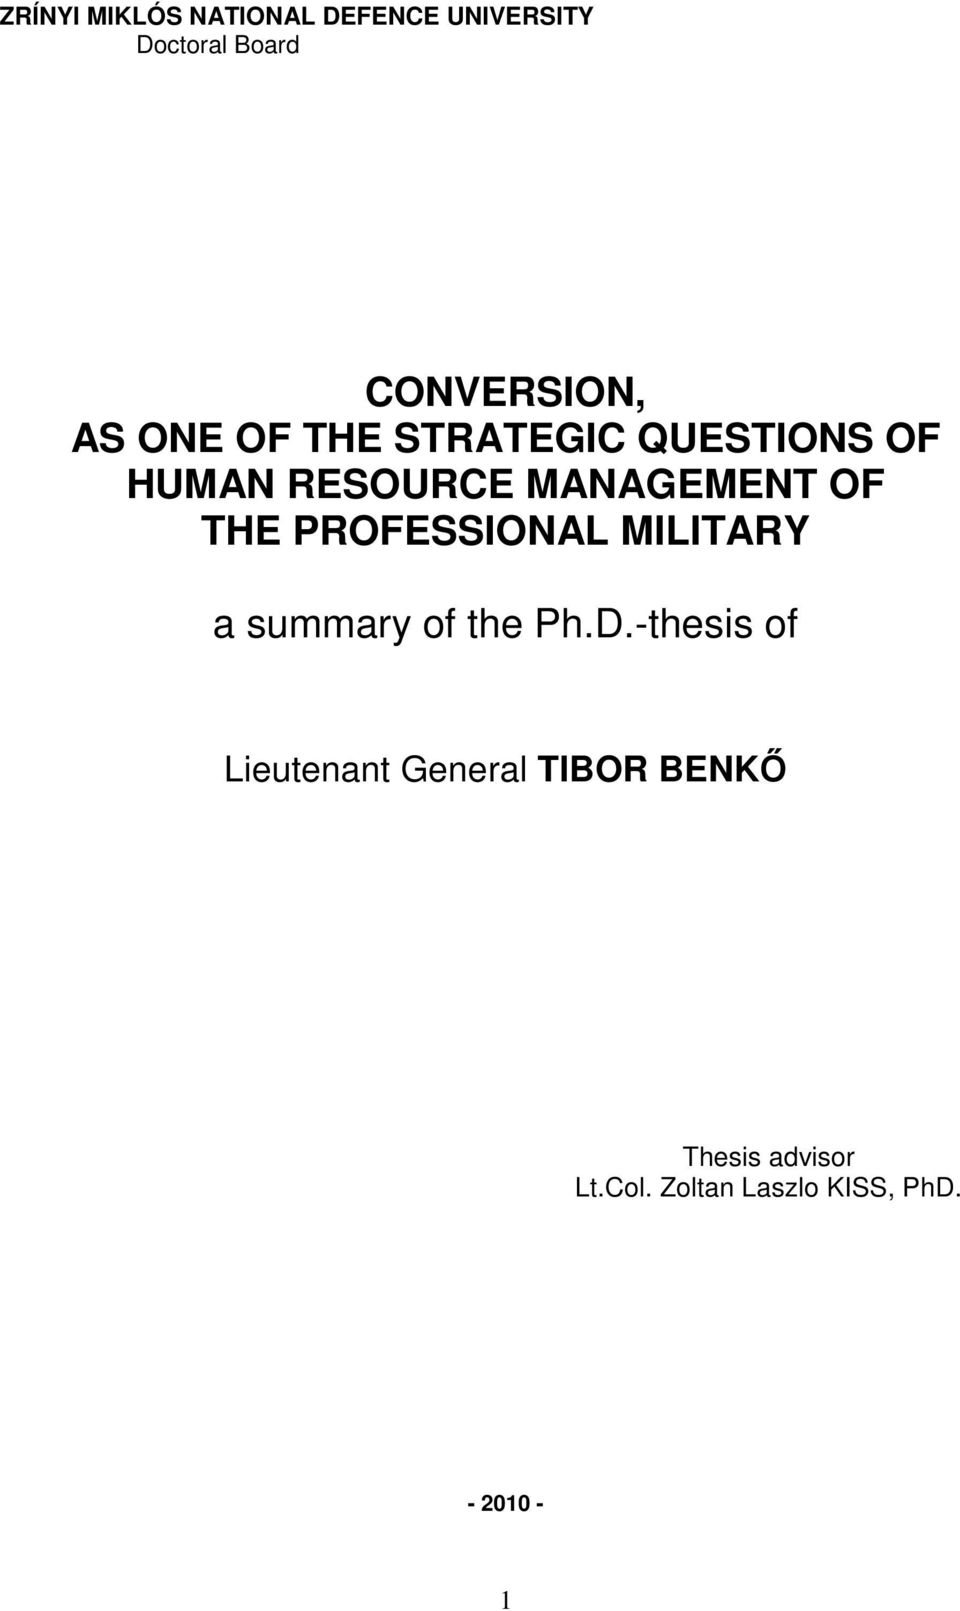 PROFESSIONAL MILITARY a summary of the Ph.D.